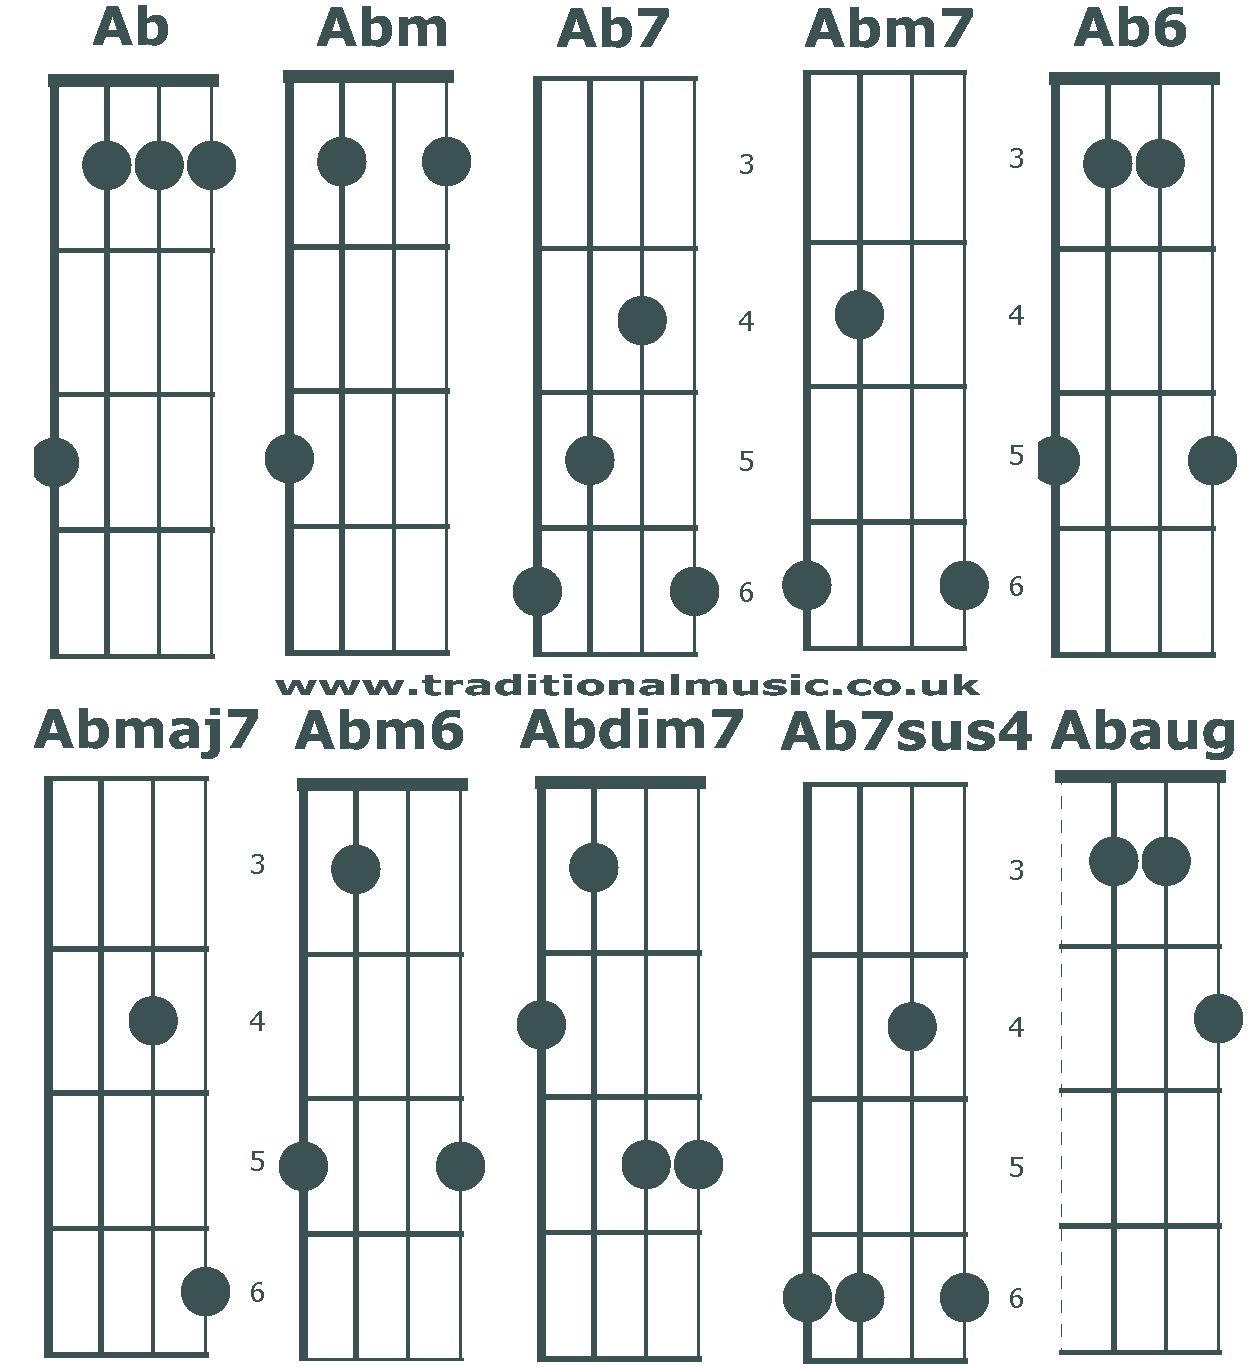 Chord charts for 5 string banjo(C tuning) chords Ab/G#